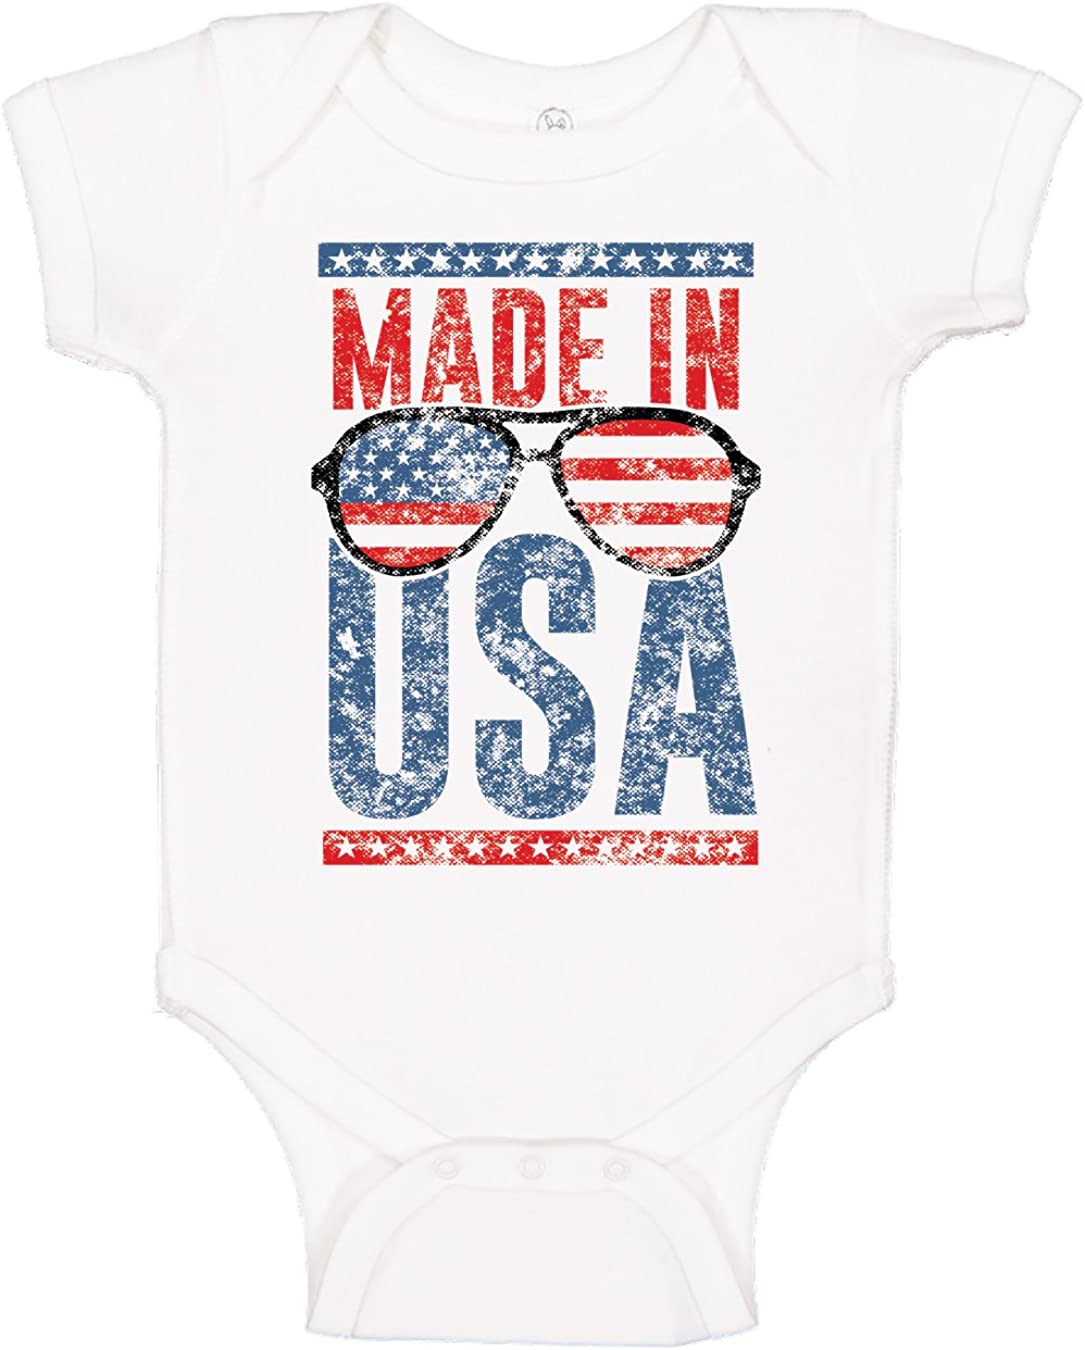 Baby Girl Onesie Independence Day Baby Boy Onesie July 4th Outfit Fourth of July Onesie Red White and Cute Onesie